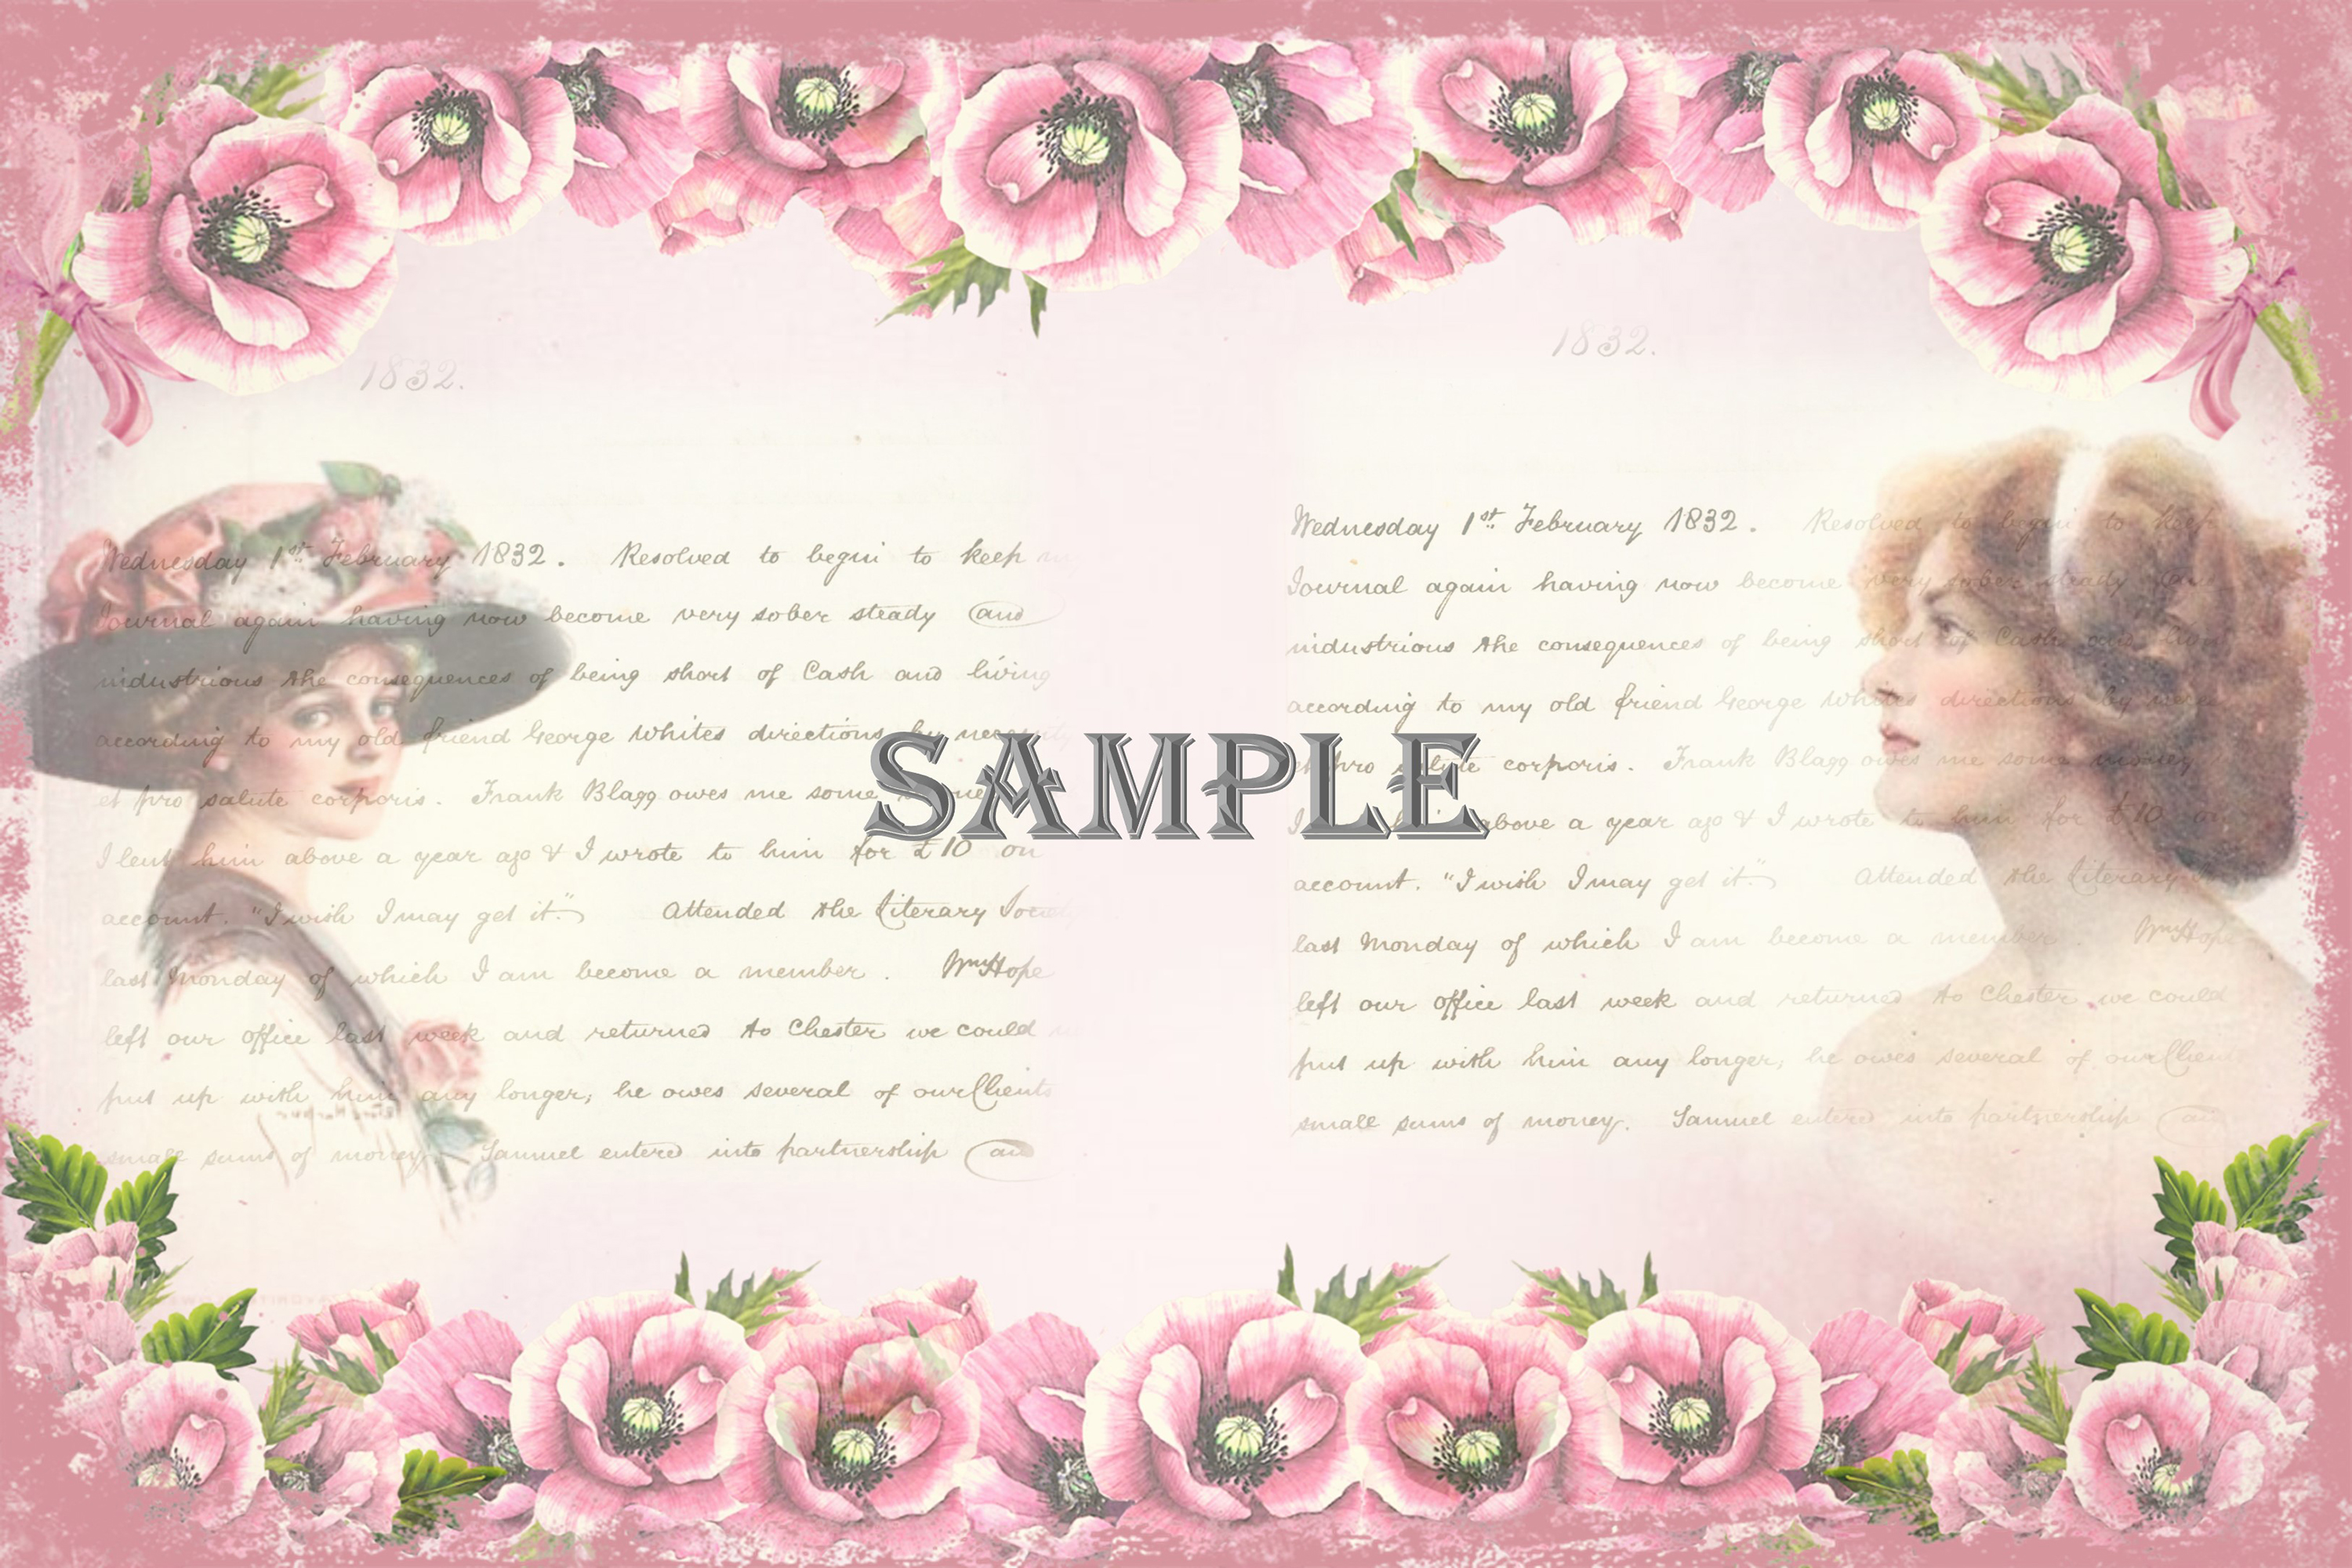 Vintage Ladies Backgrounds, Collage or Journal Sheets, A4 example image 5